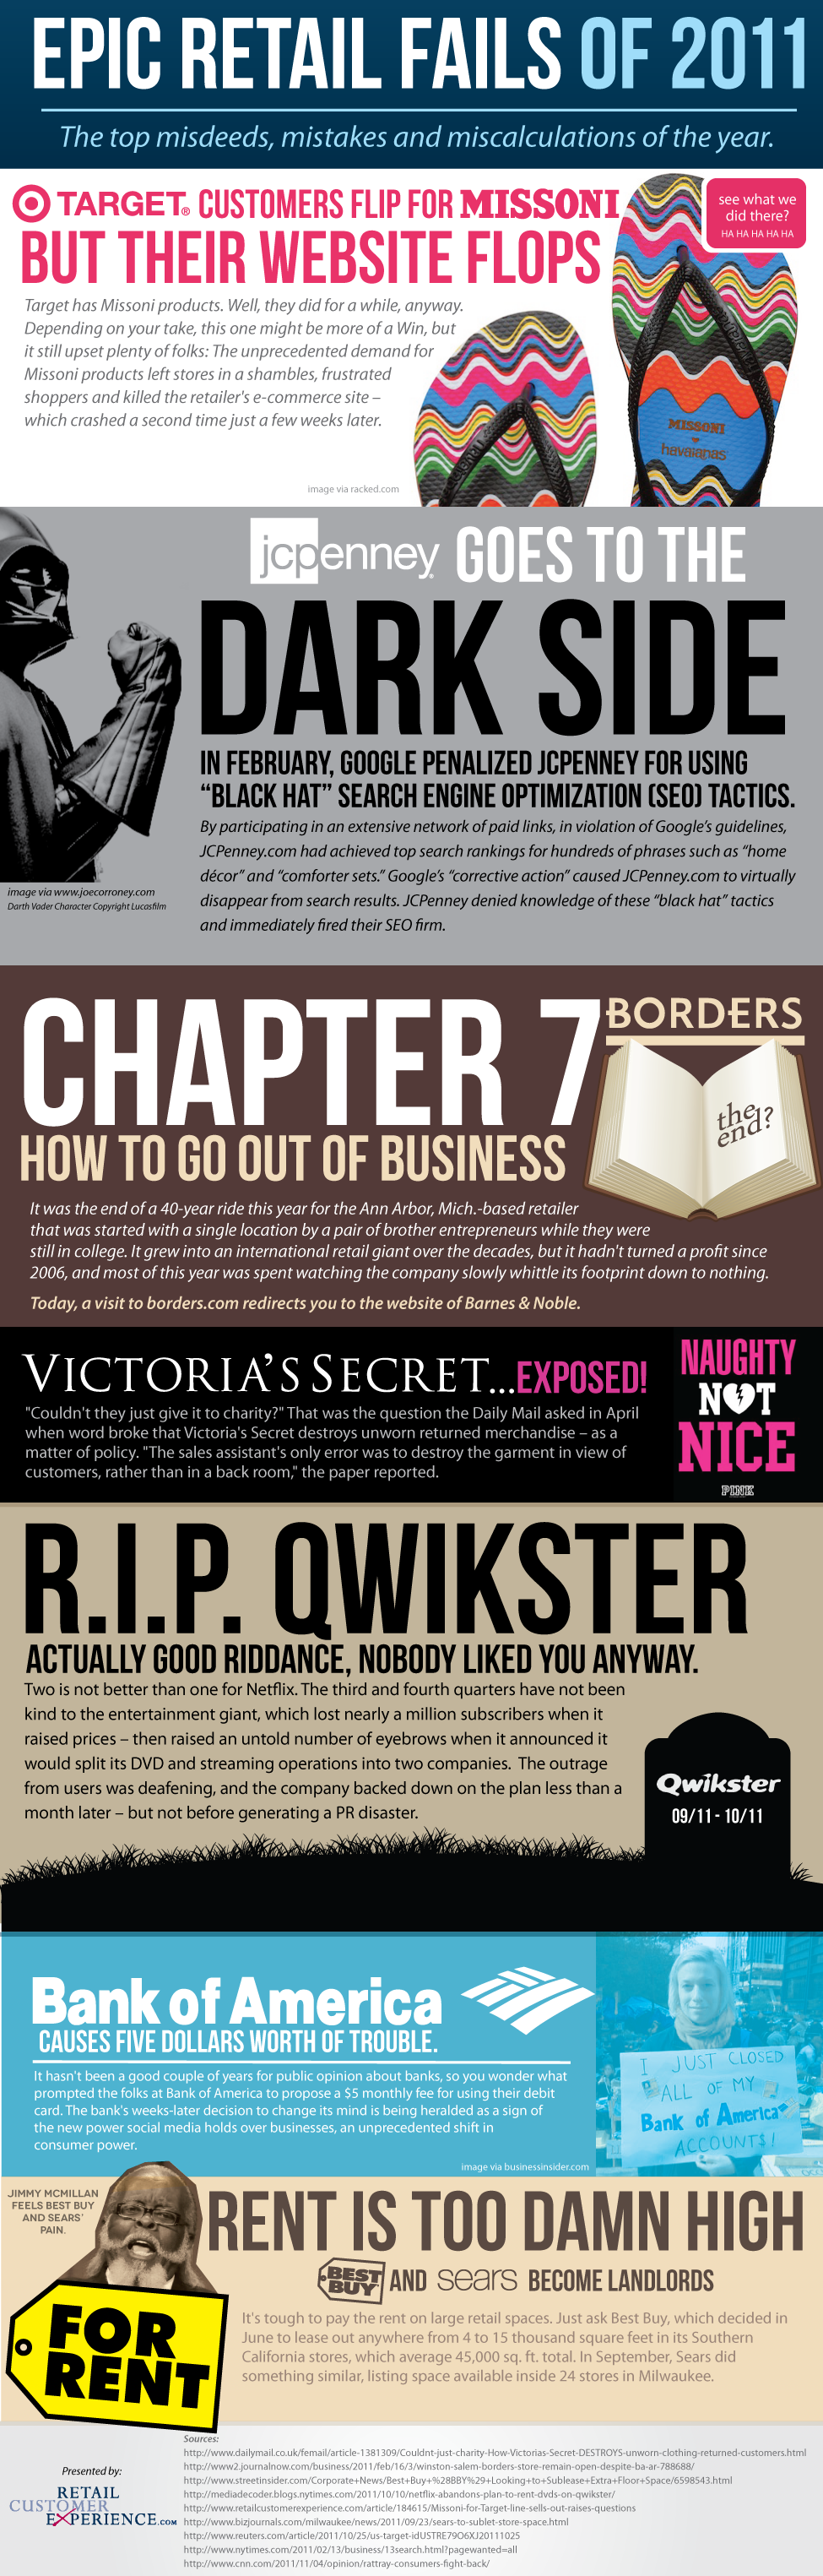 Epic Retail Fails of 2011 [Infographic]